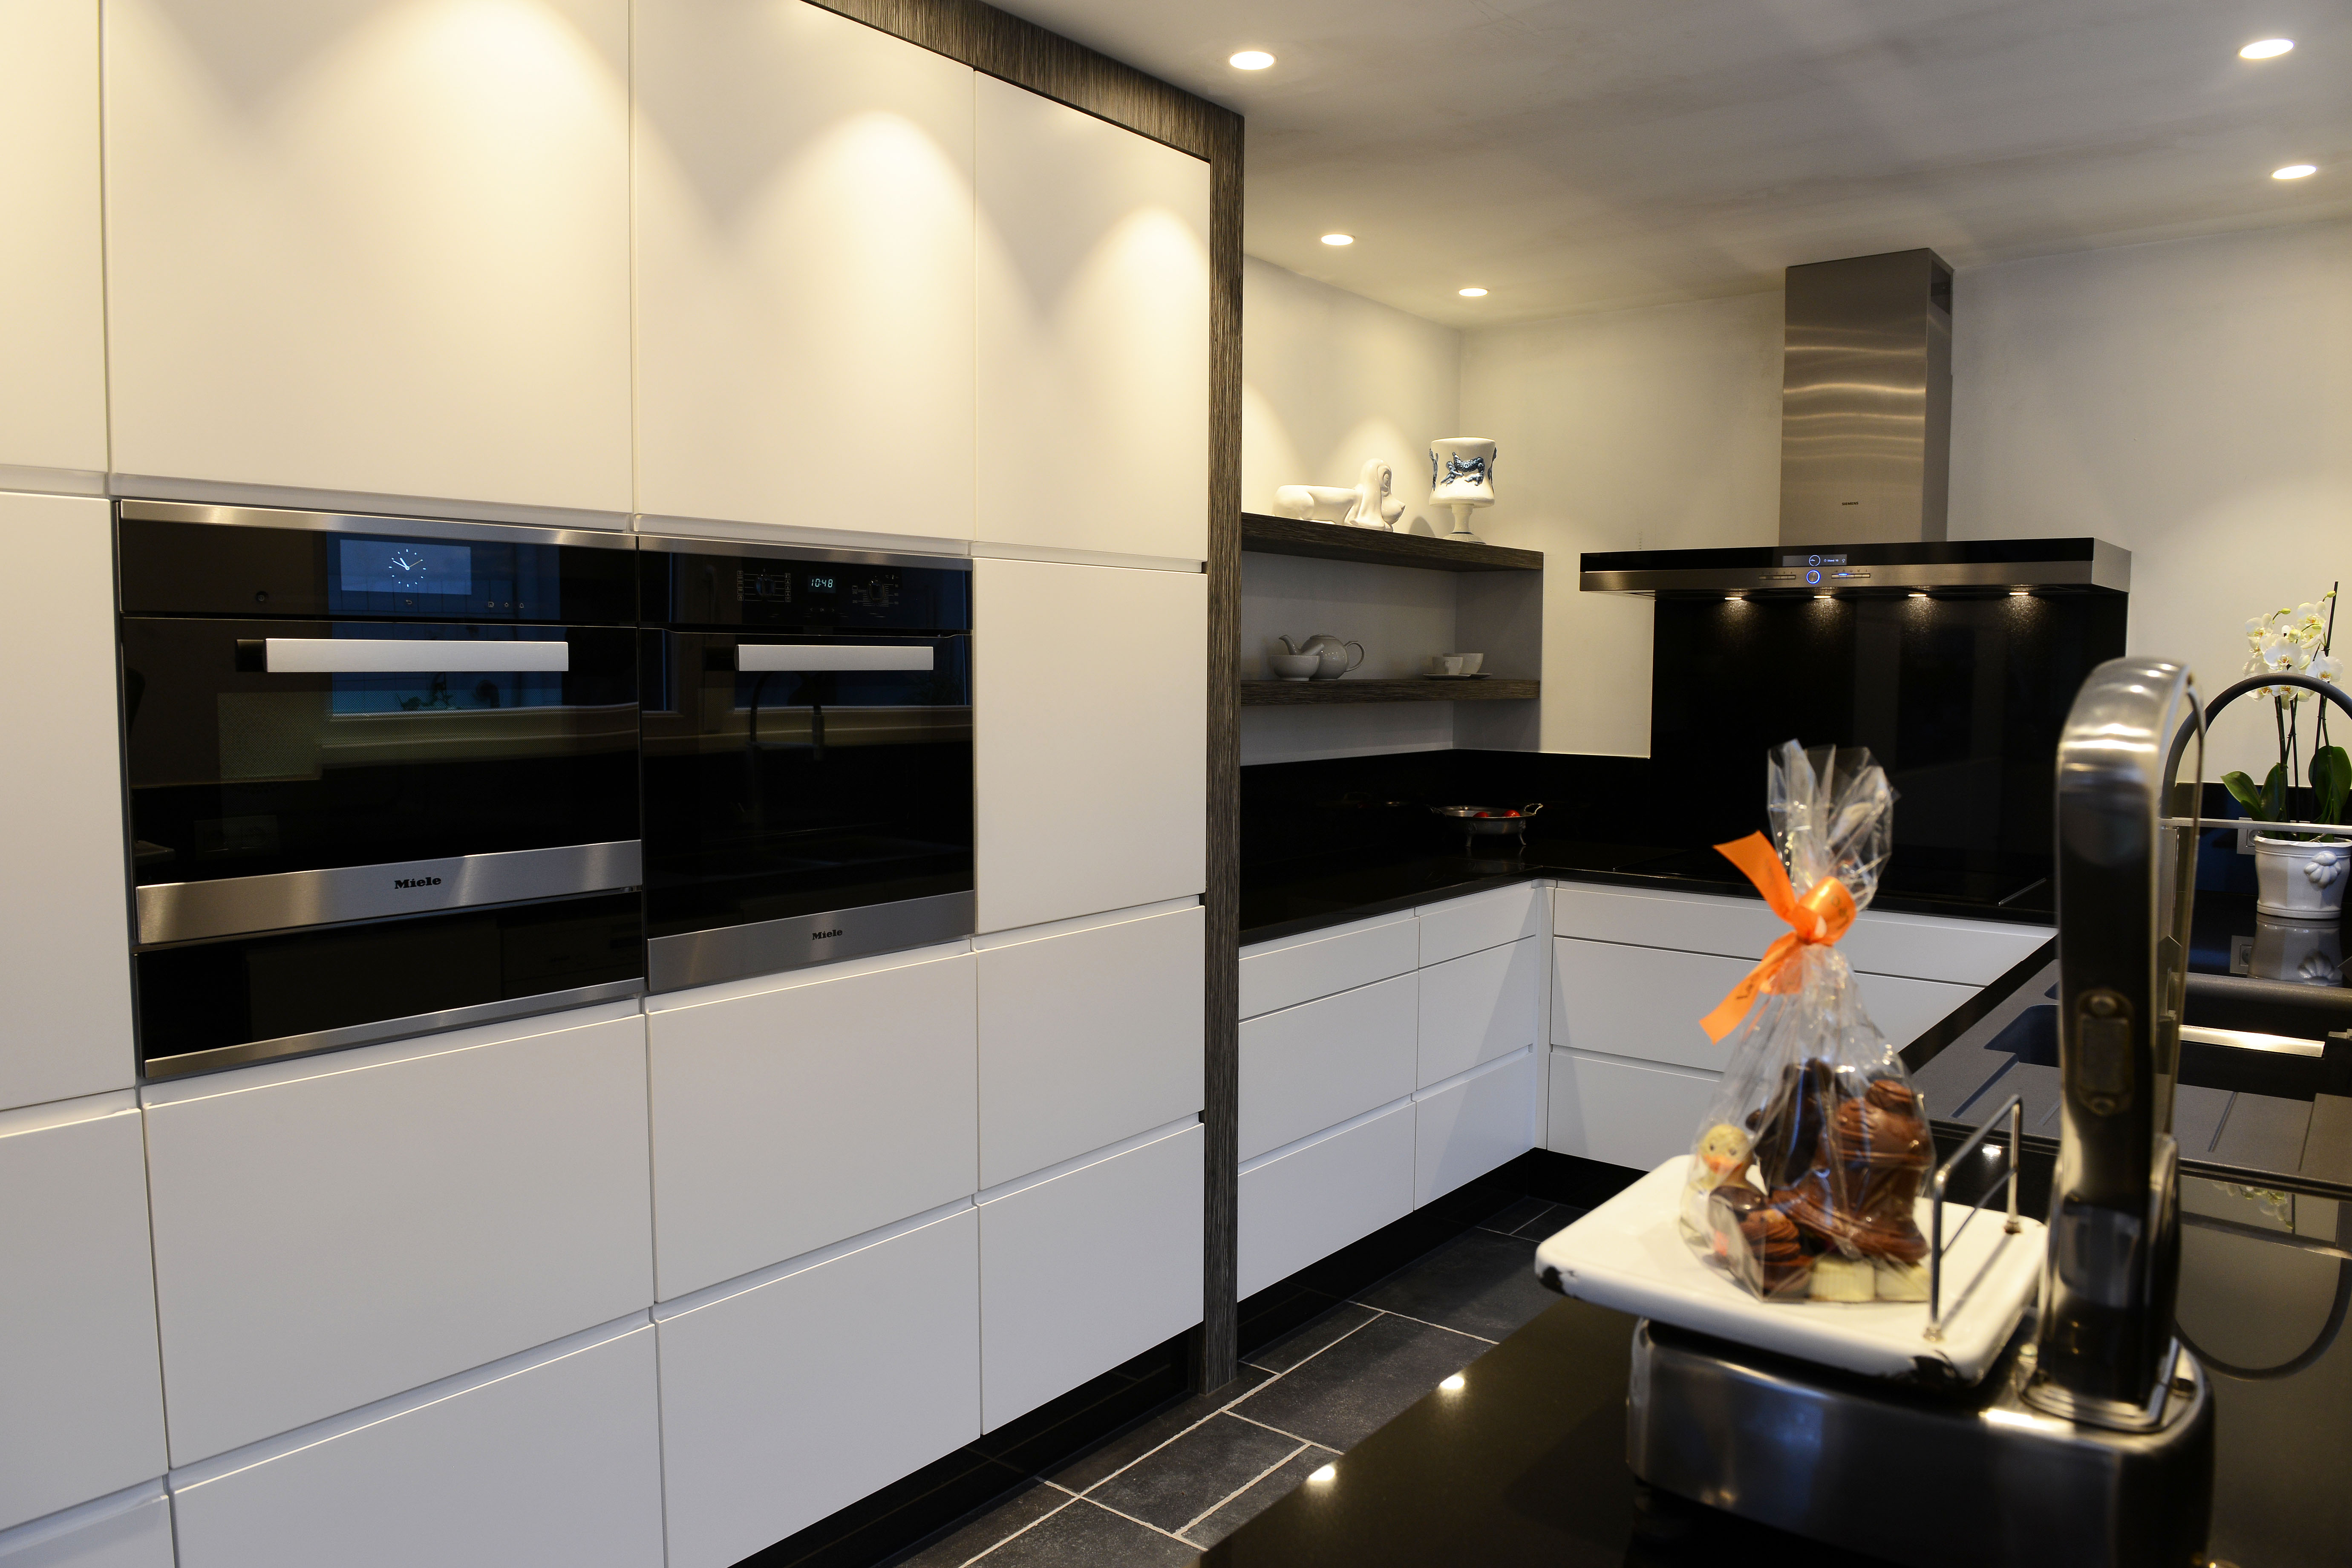 Transitional keuken ontwerp ~ anortiz.com for .